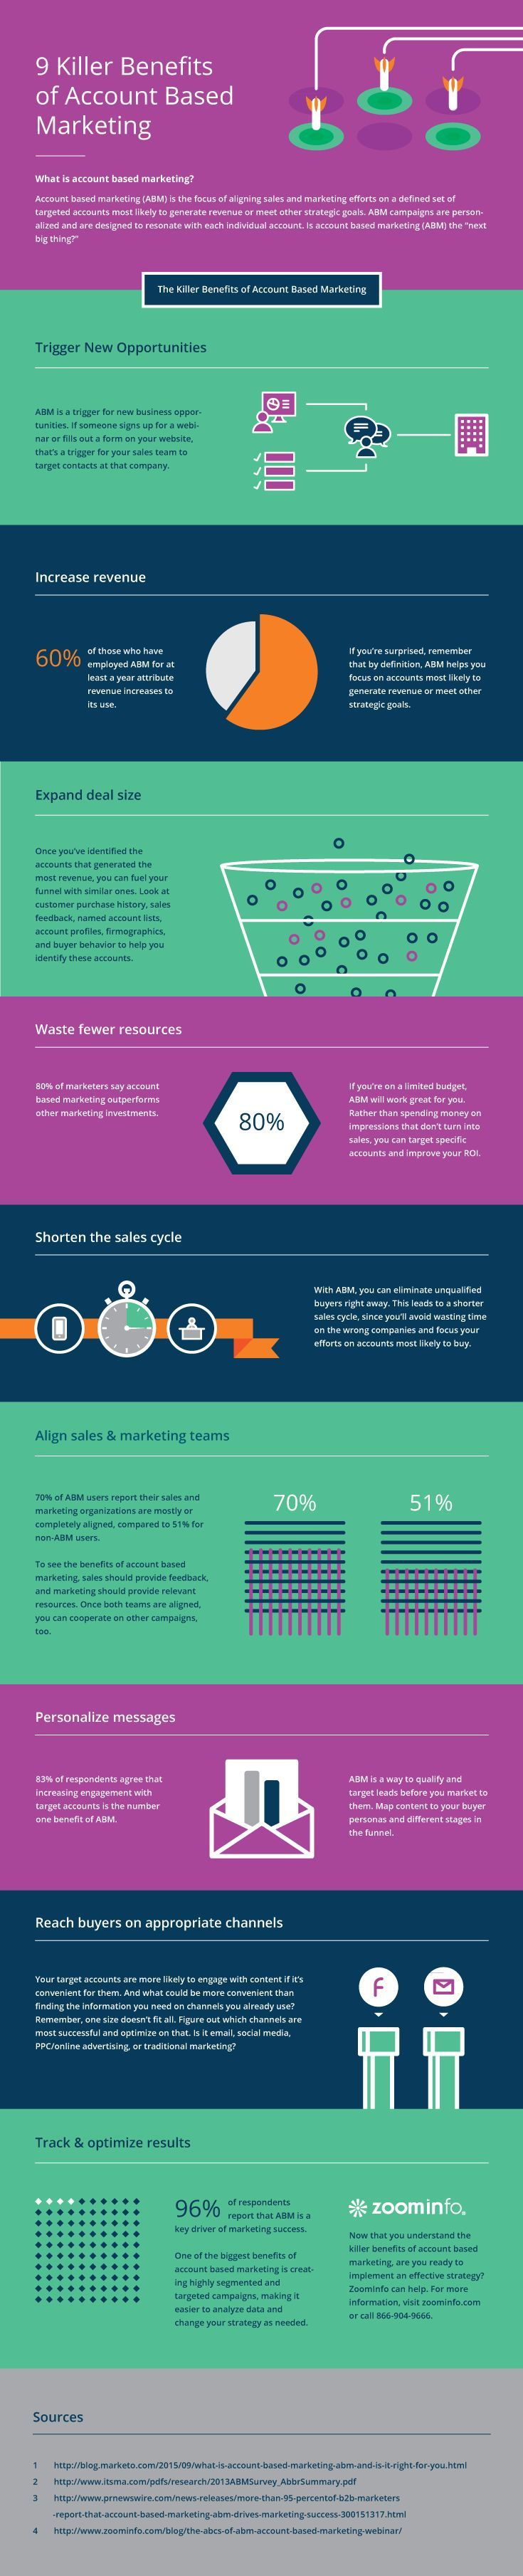 9 Reasons to Try an Account Based Marketing Strategy #Infographic #Marketing